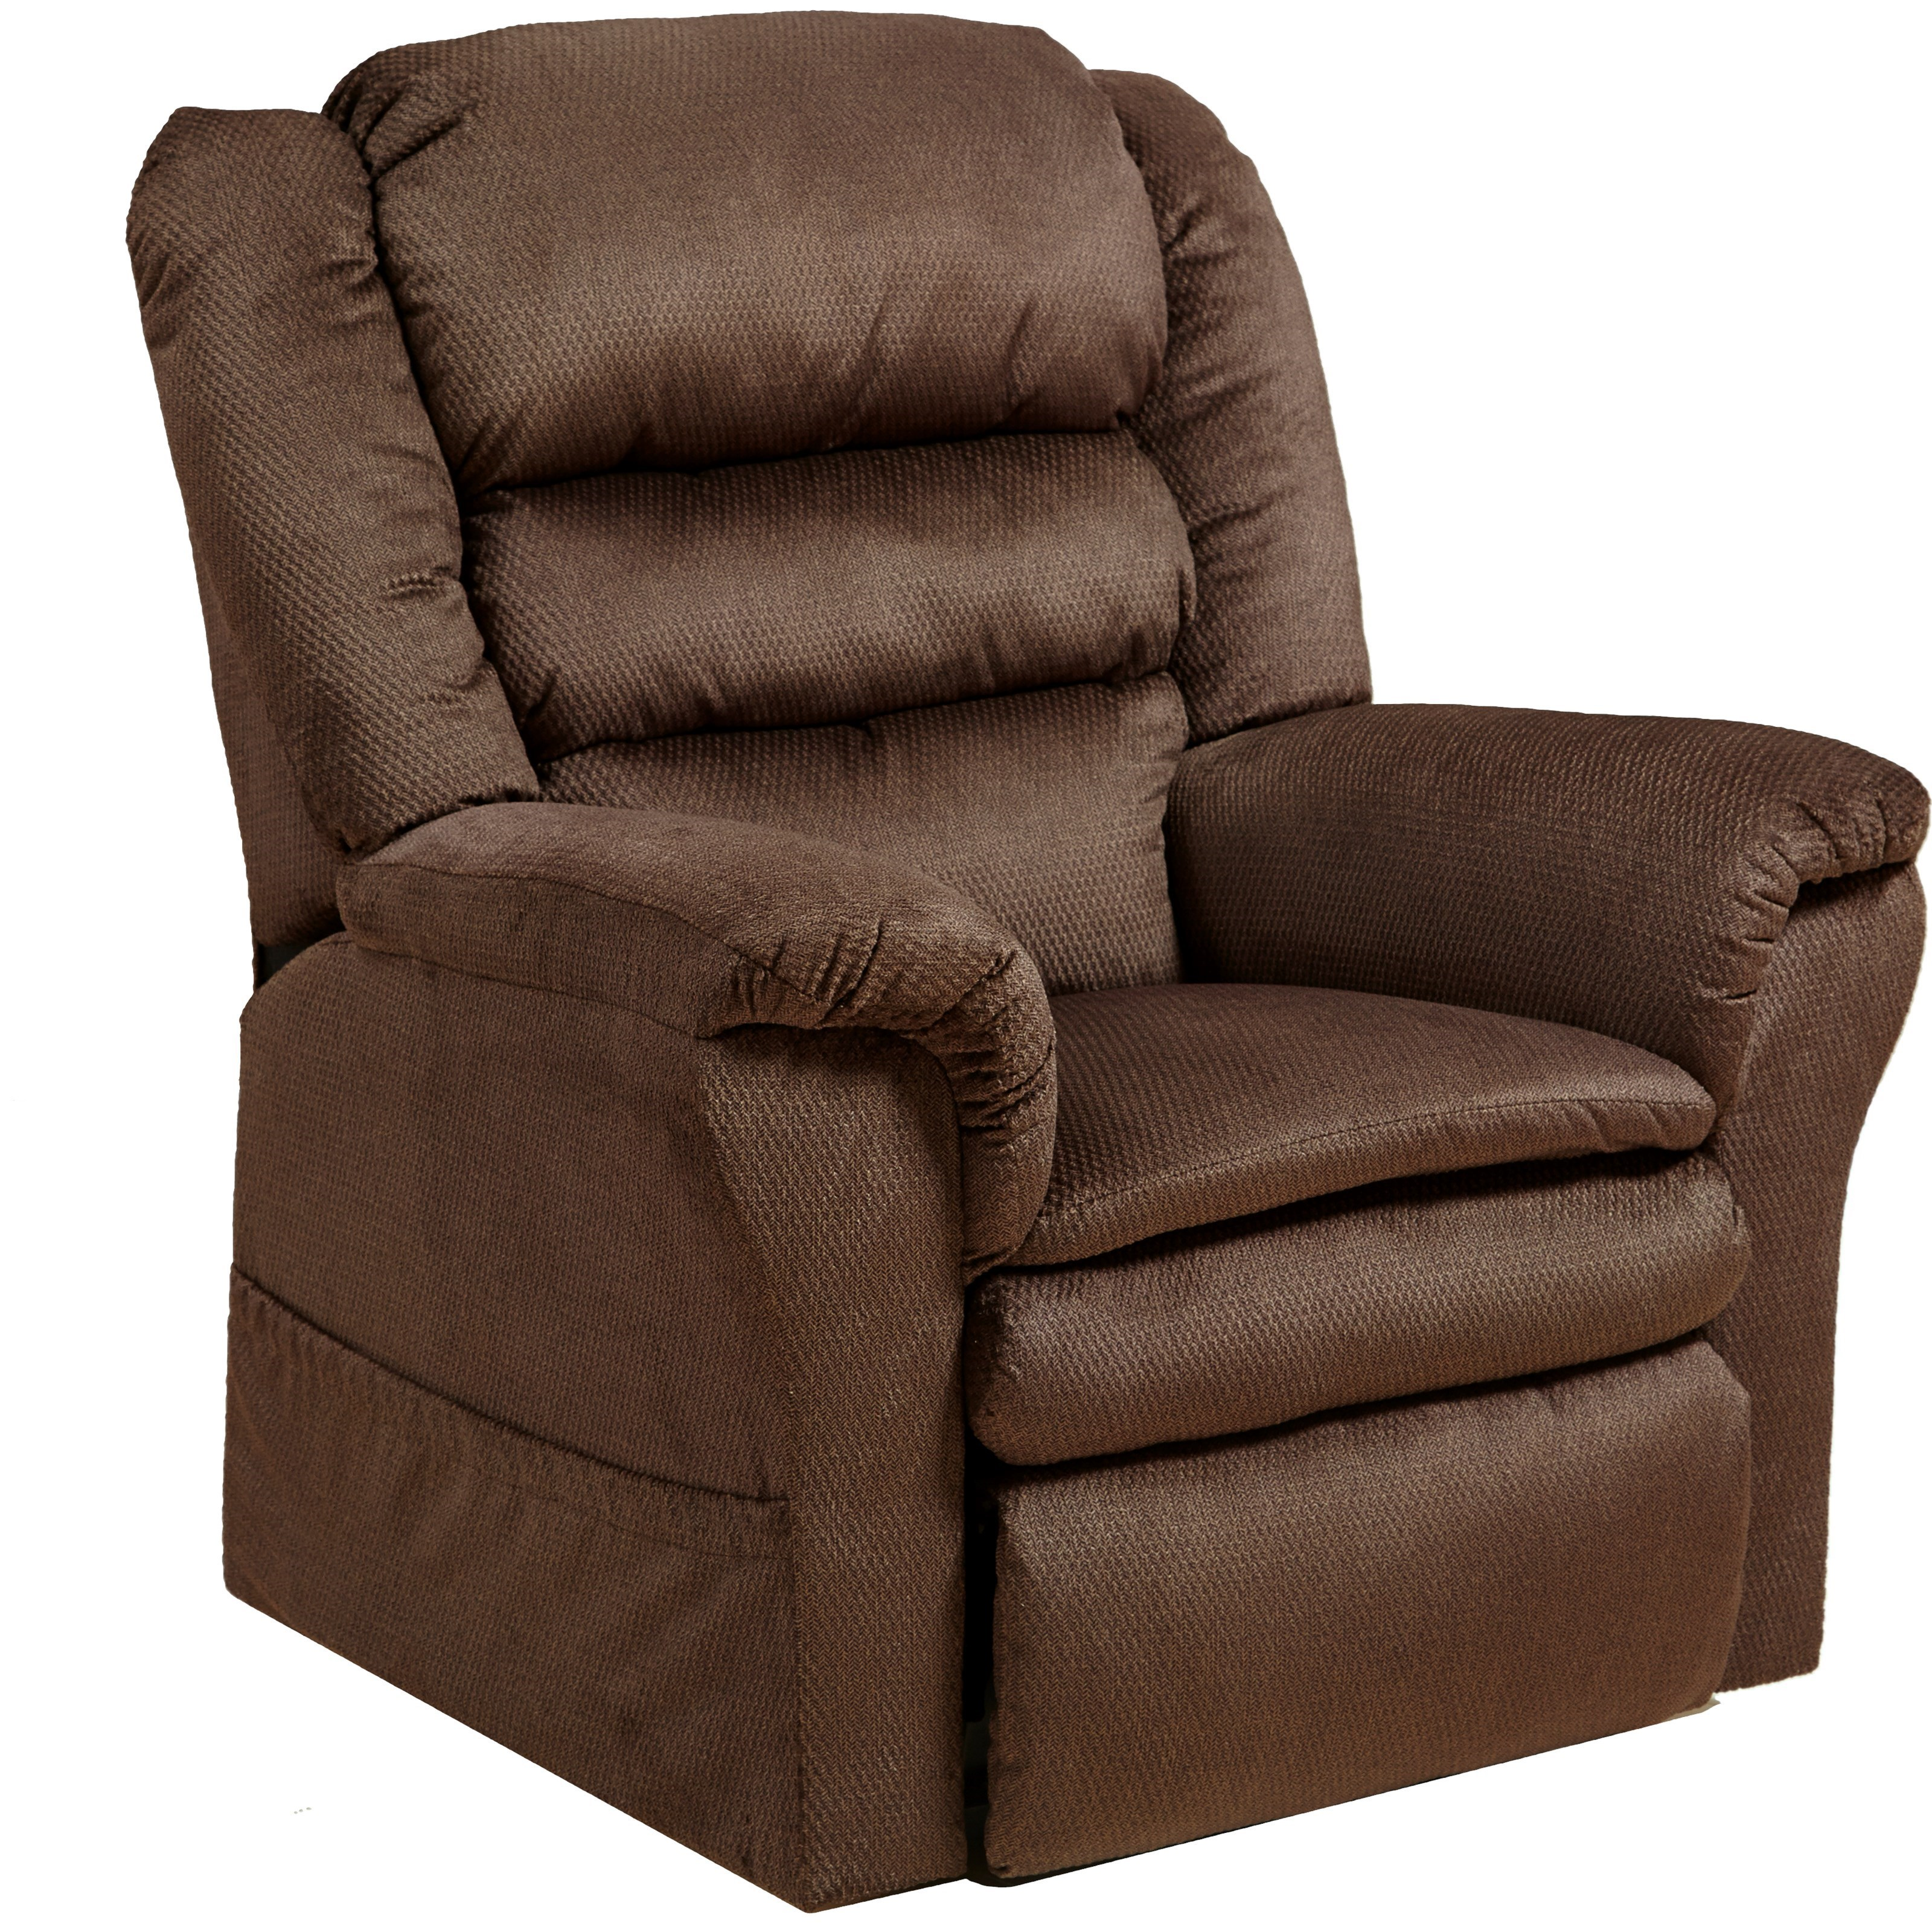 Power Lift Recliner with Pillowtop Seat